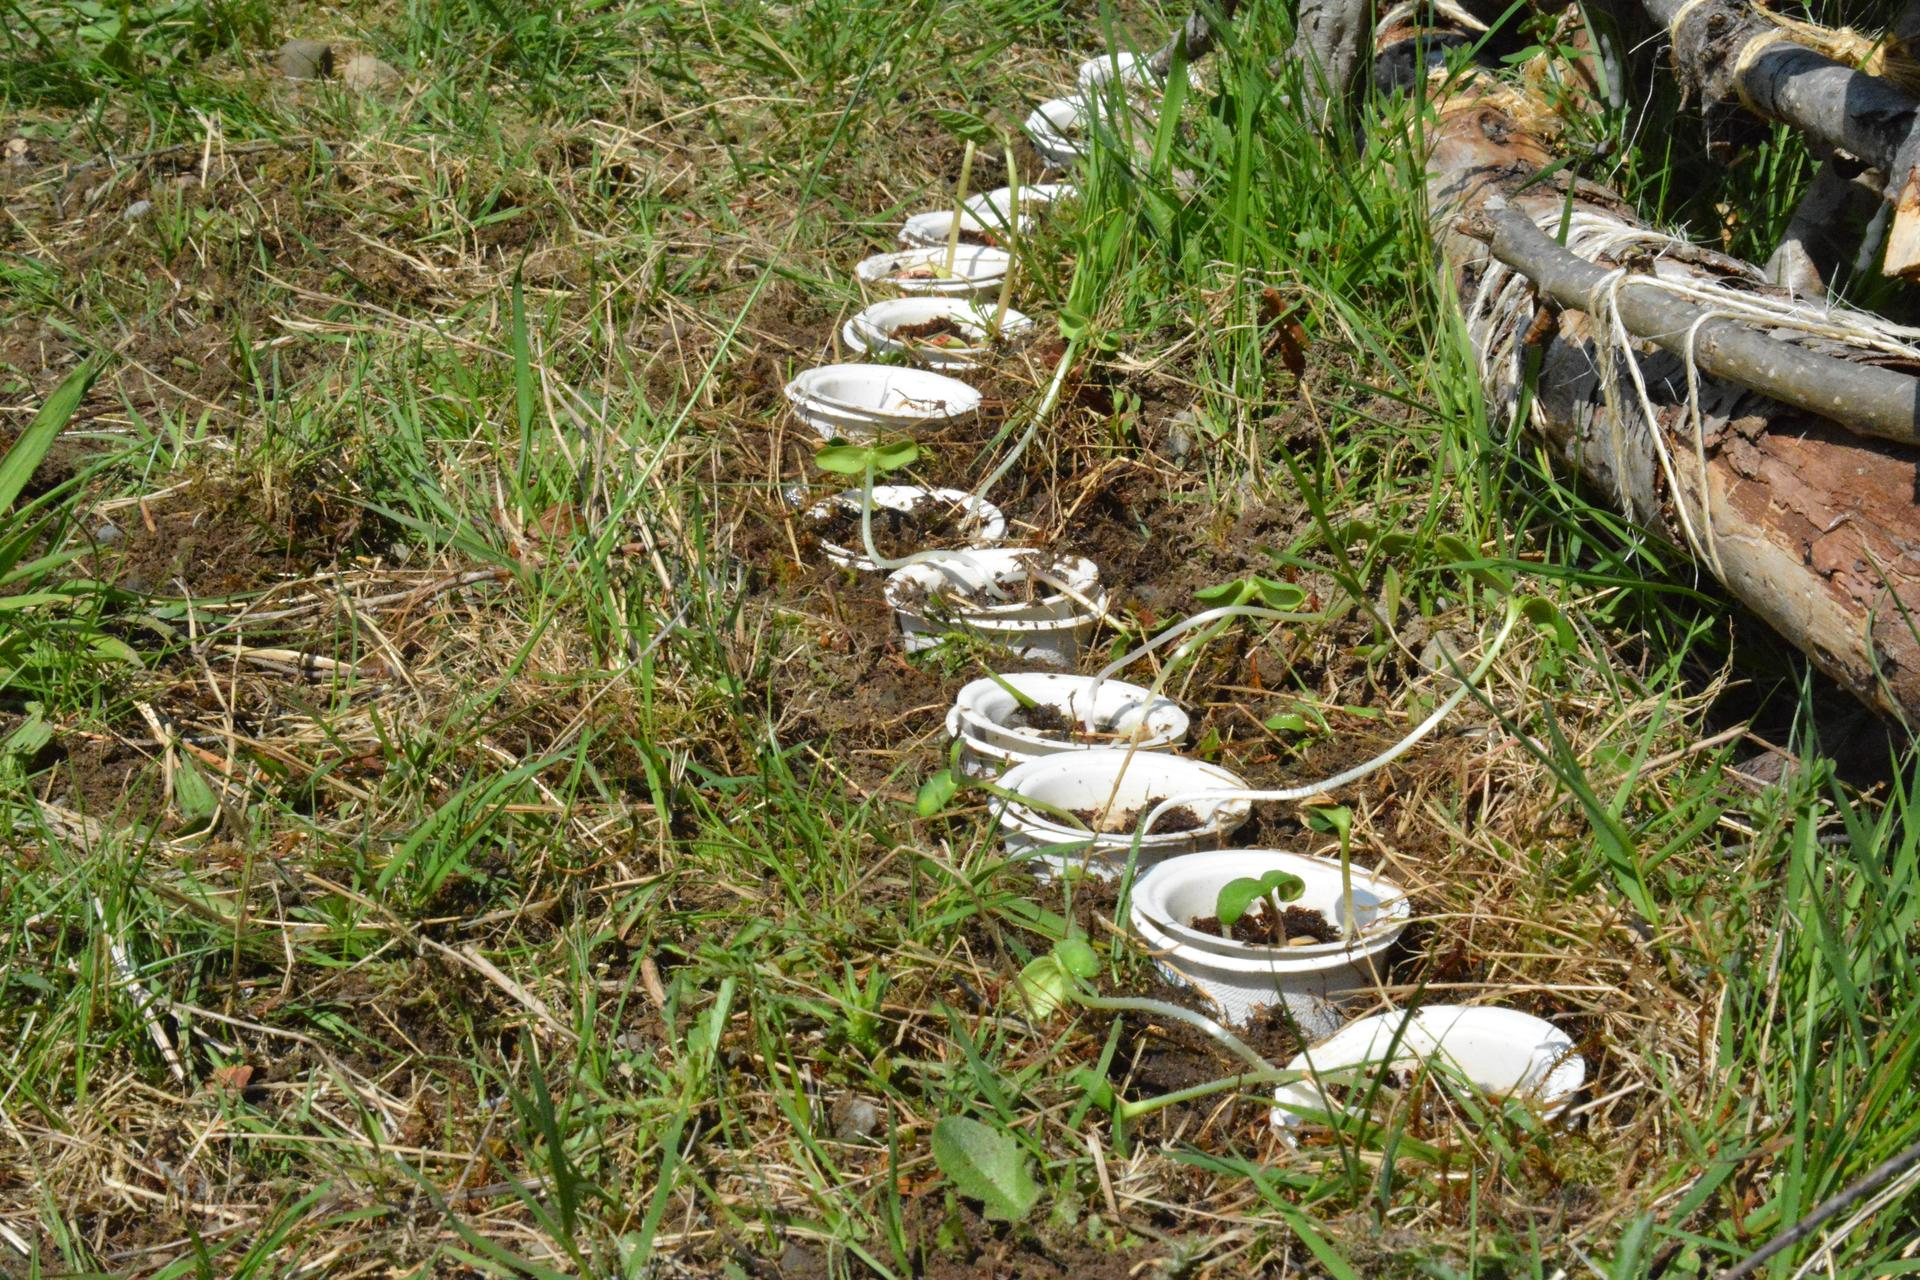 Plants growing in cups